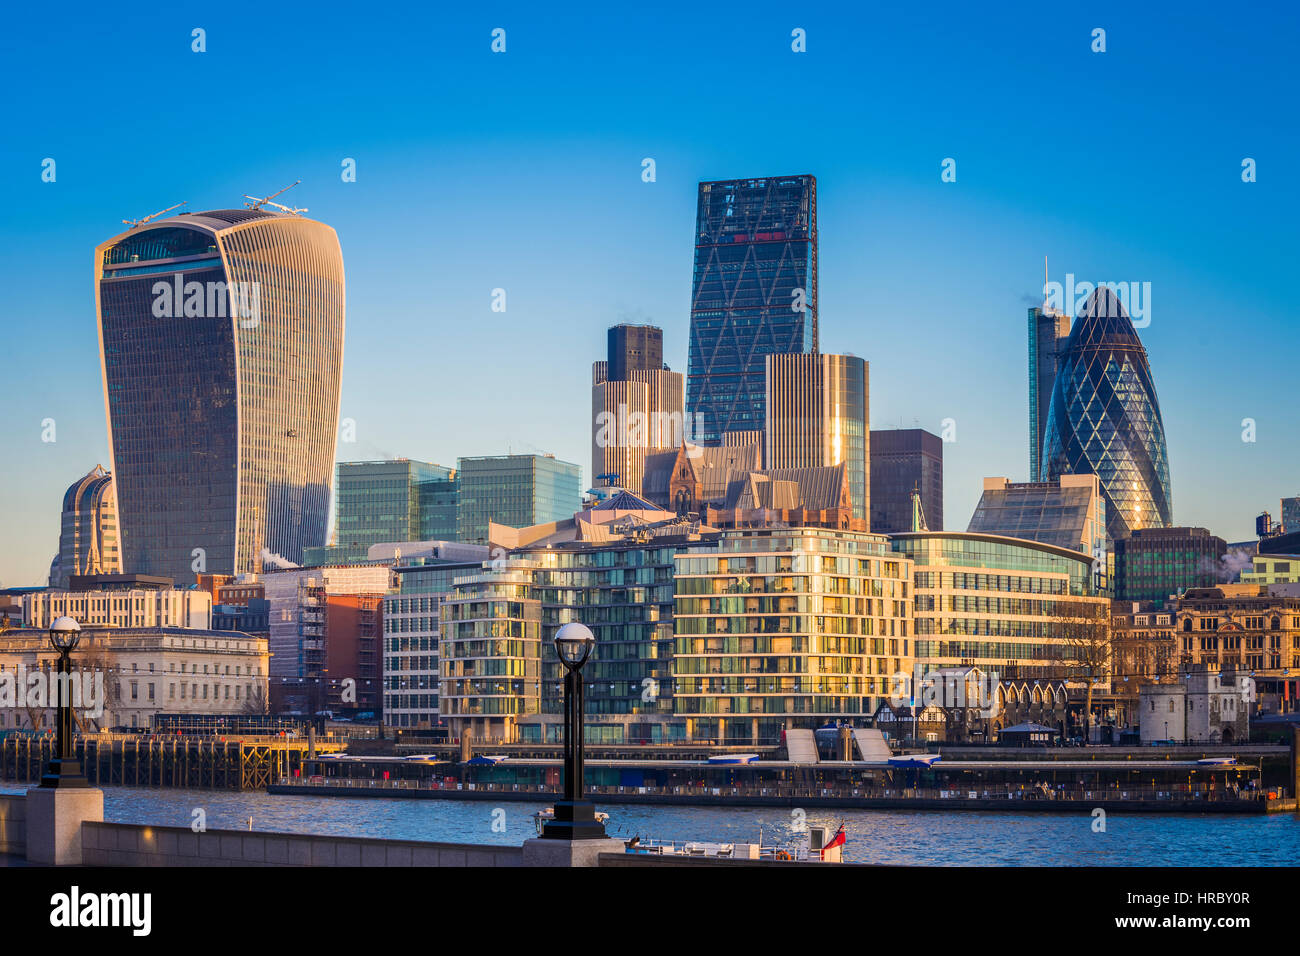 London, UK - The world famous business district of London with skyscrapers and clear blue sky at sunrise - Stock Image